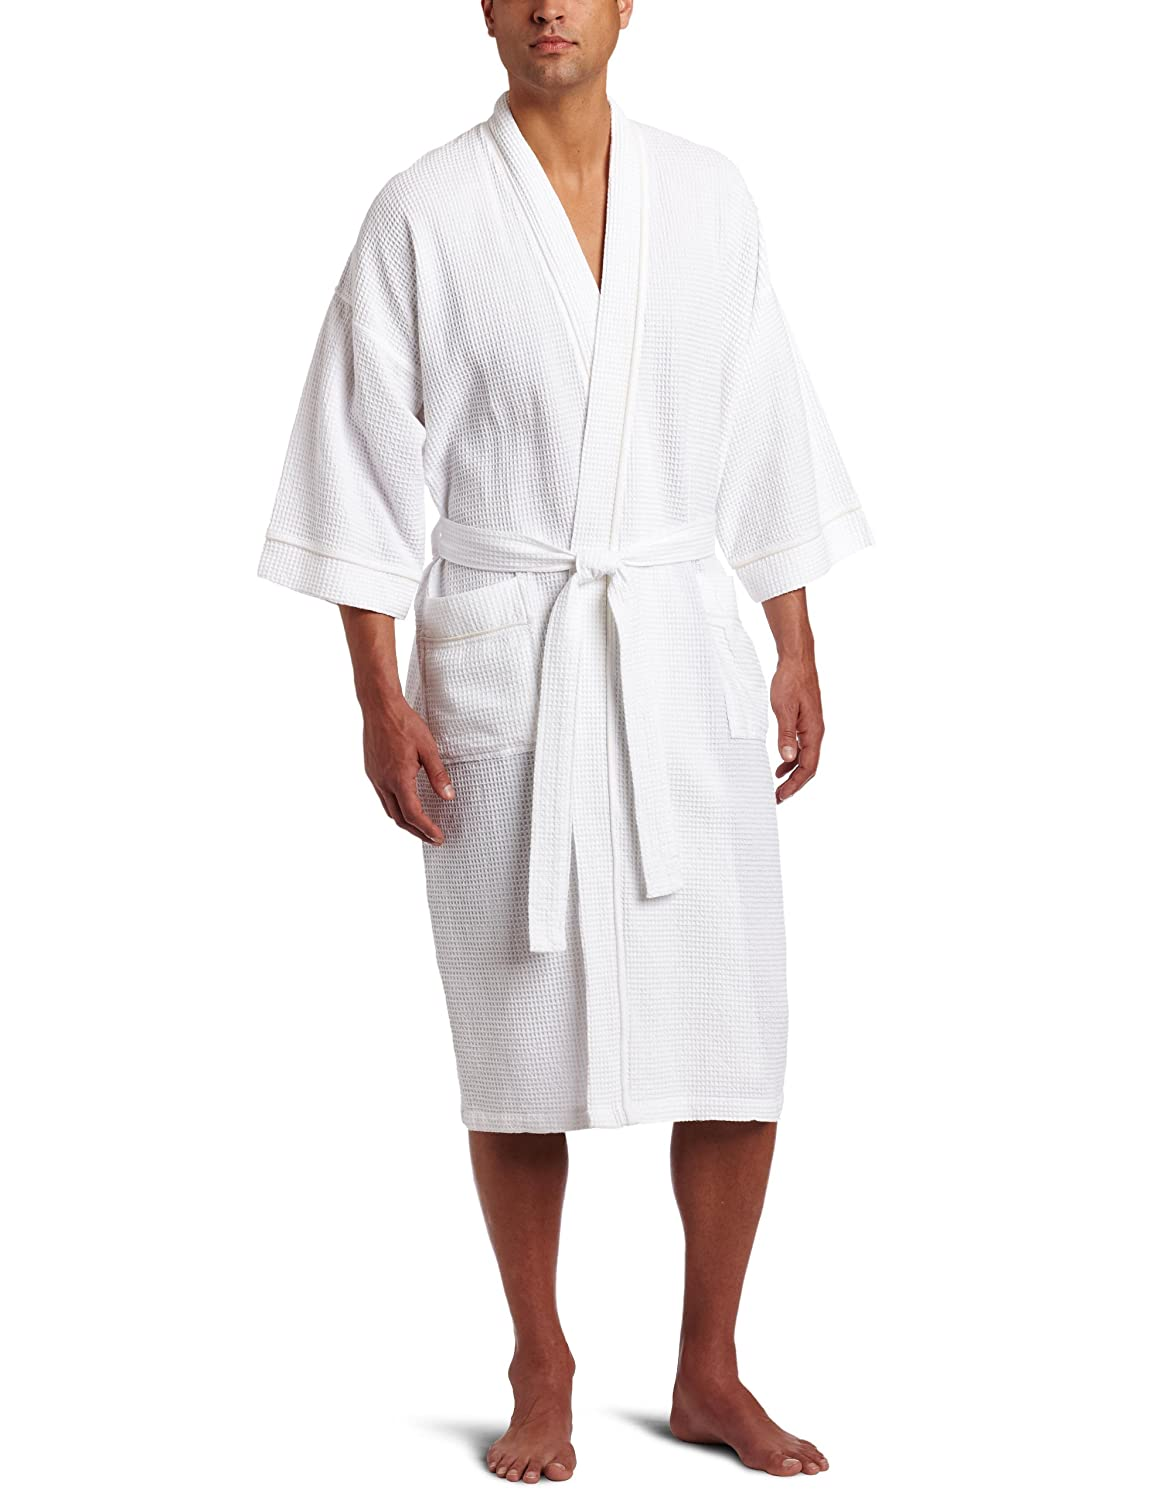 Majestic International Men's Somerset Spa Woven Waffle Kimono Robe White One Size Majestic International USA Inc